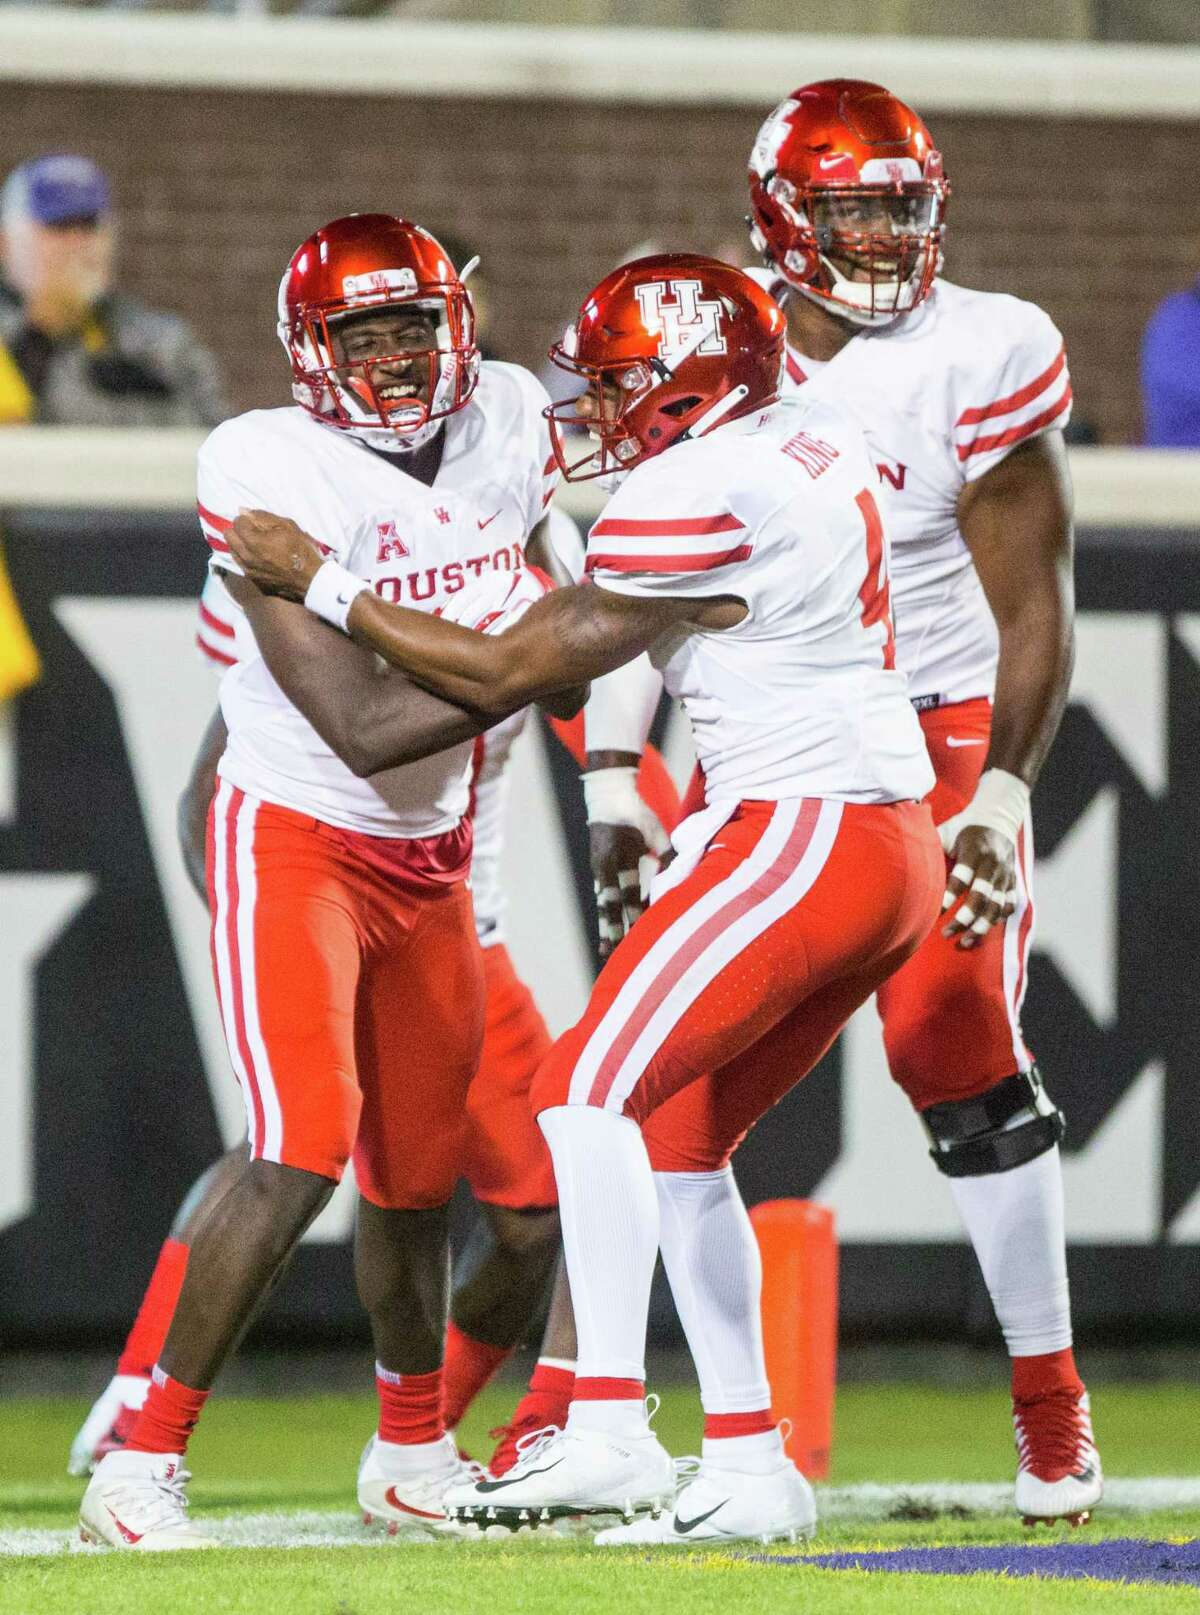 Houston's Courtney Lark, left, celebrates with teammates after scoring during their game against East Carolina on Oct. 13, 2018.